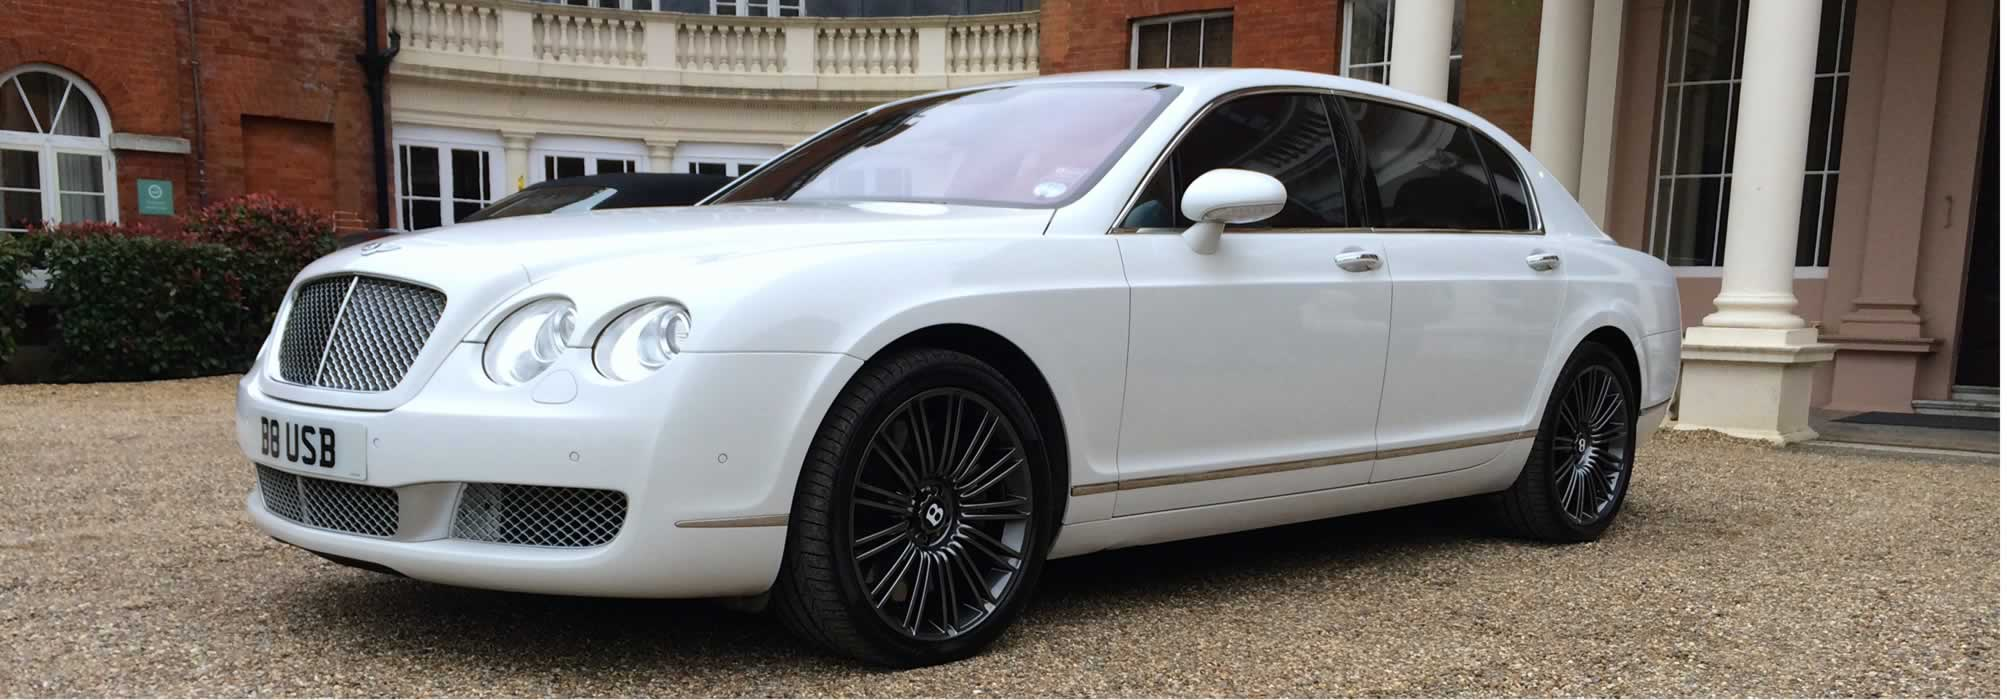 Bentley Flying Spur White Herts Rollers